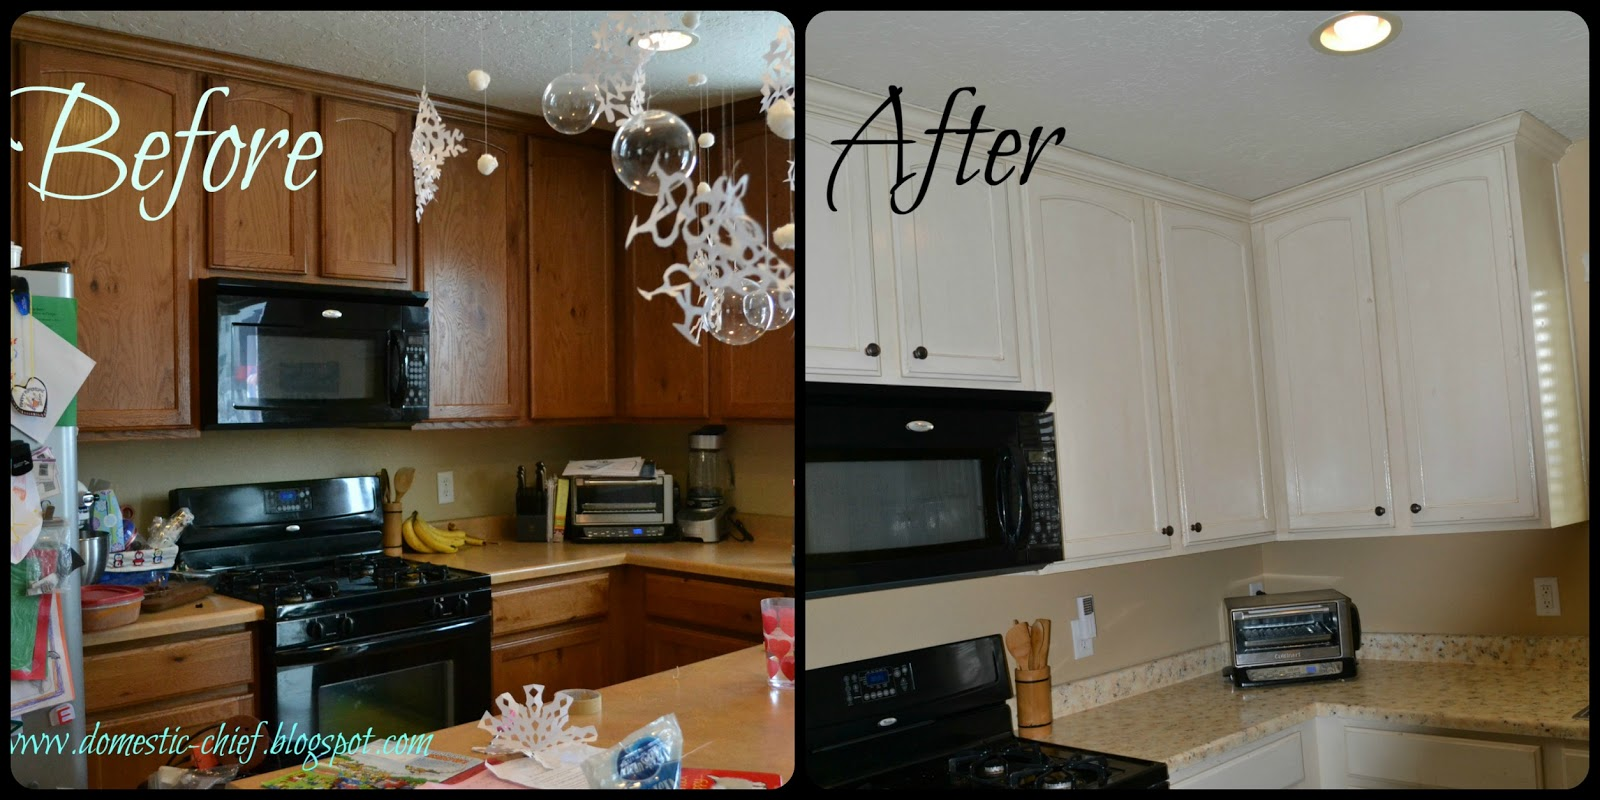 Chief domestic officer kitchen cabinet makeover for Kitchen cabinets makeover